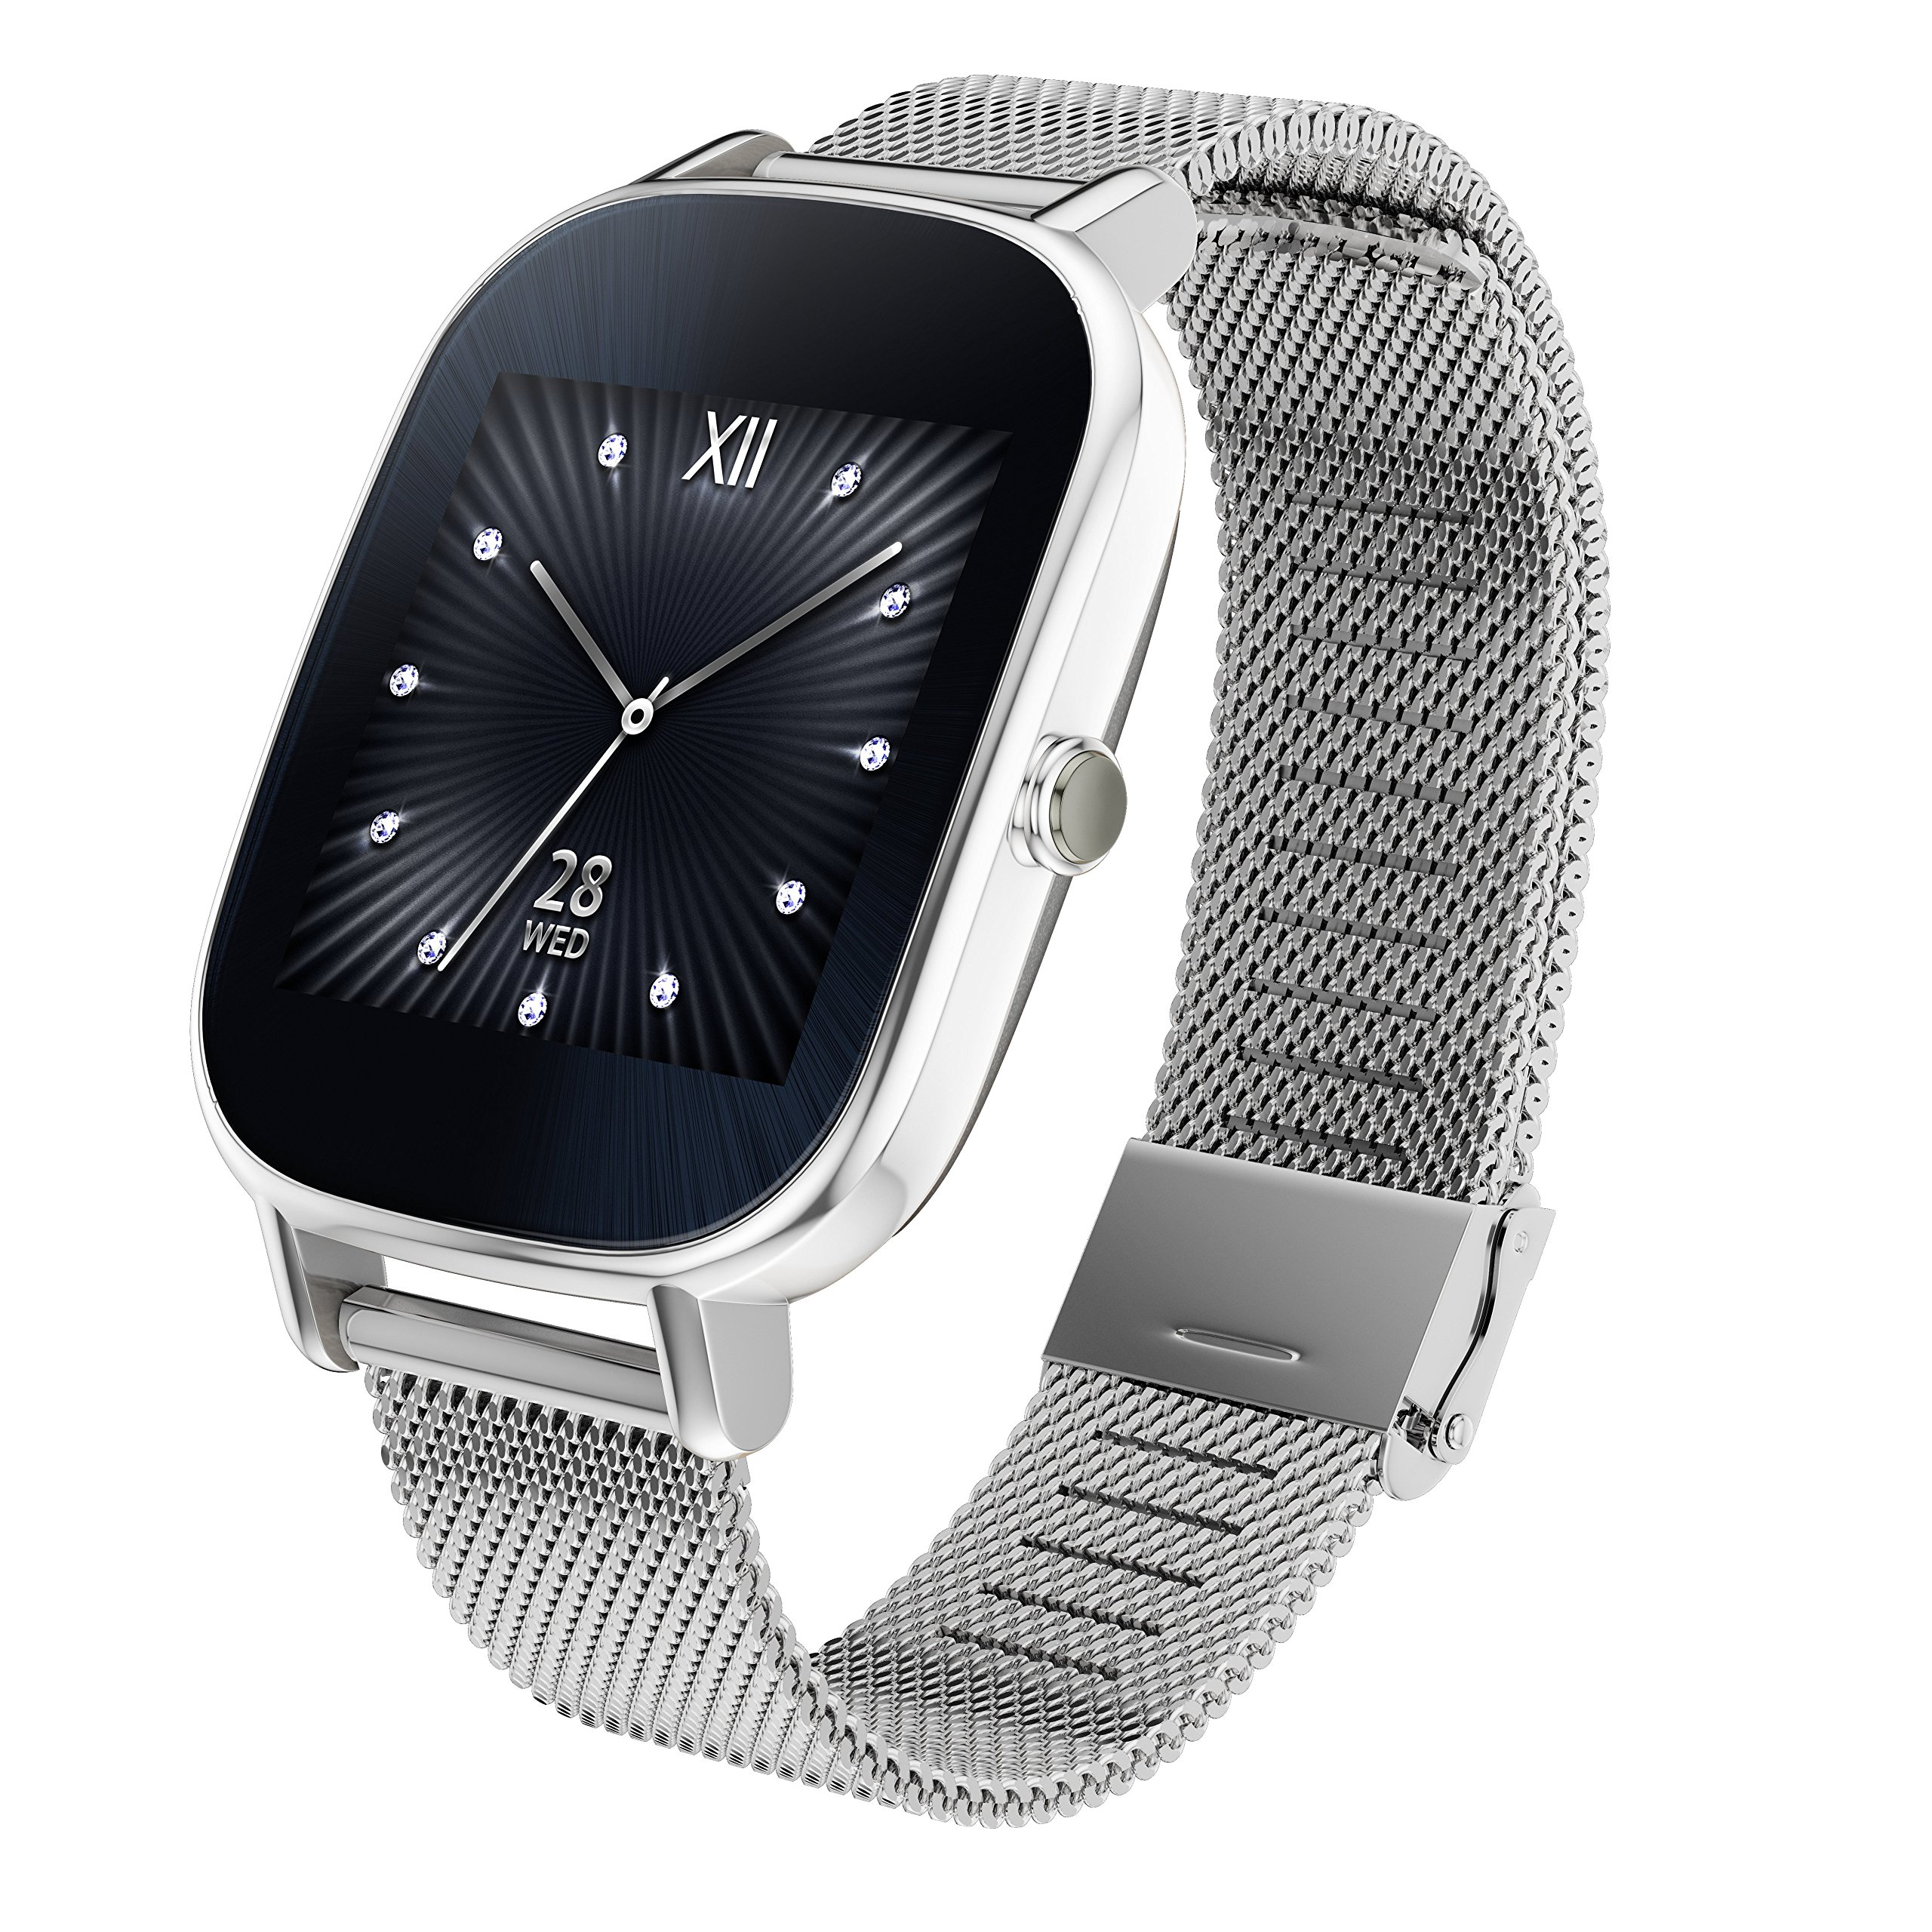 ASUS ZenWatch 2 Android Wear Smartwatch - 1.45'', Silver case with Silver Metal band